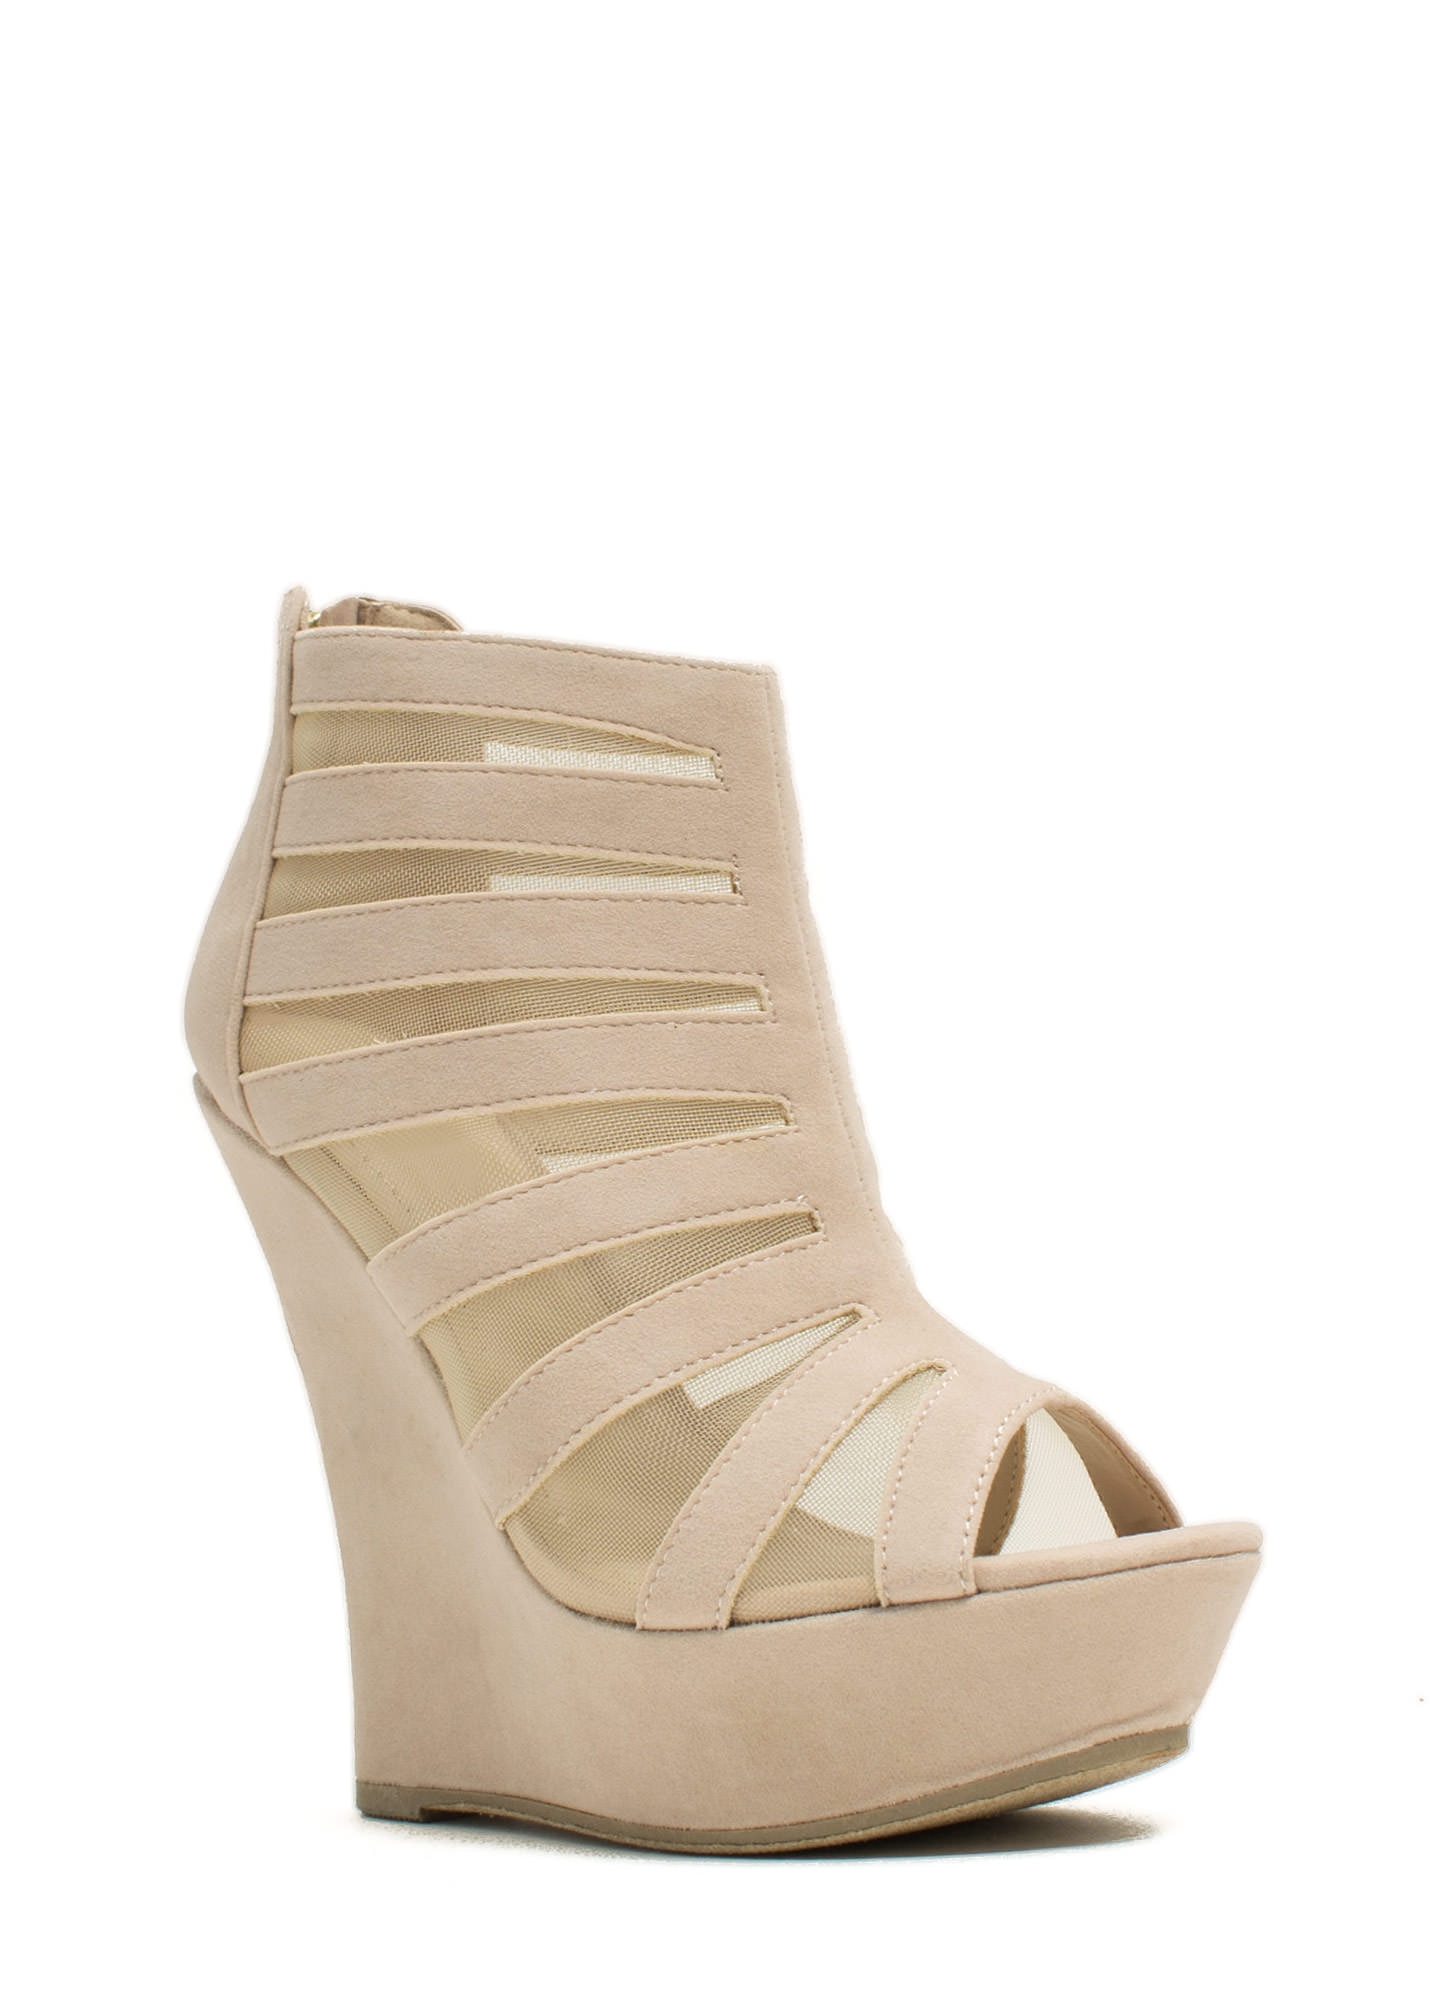 Mesh Inset Laddered Wedges NUDE